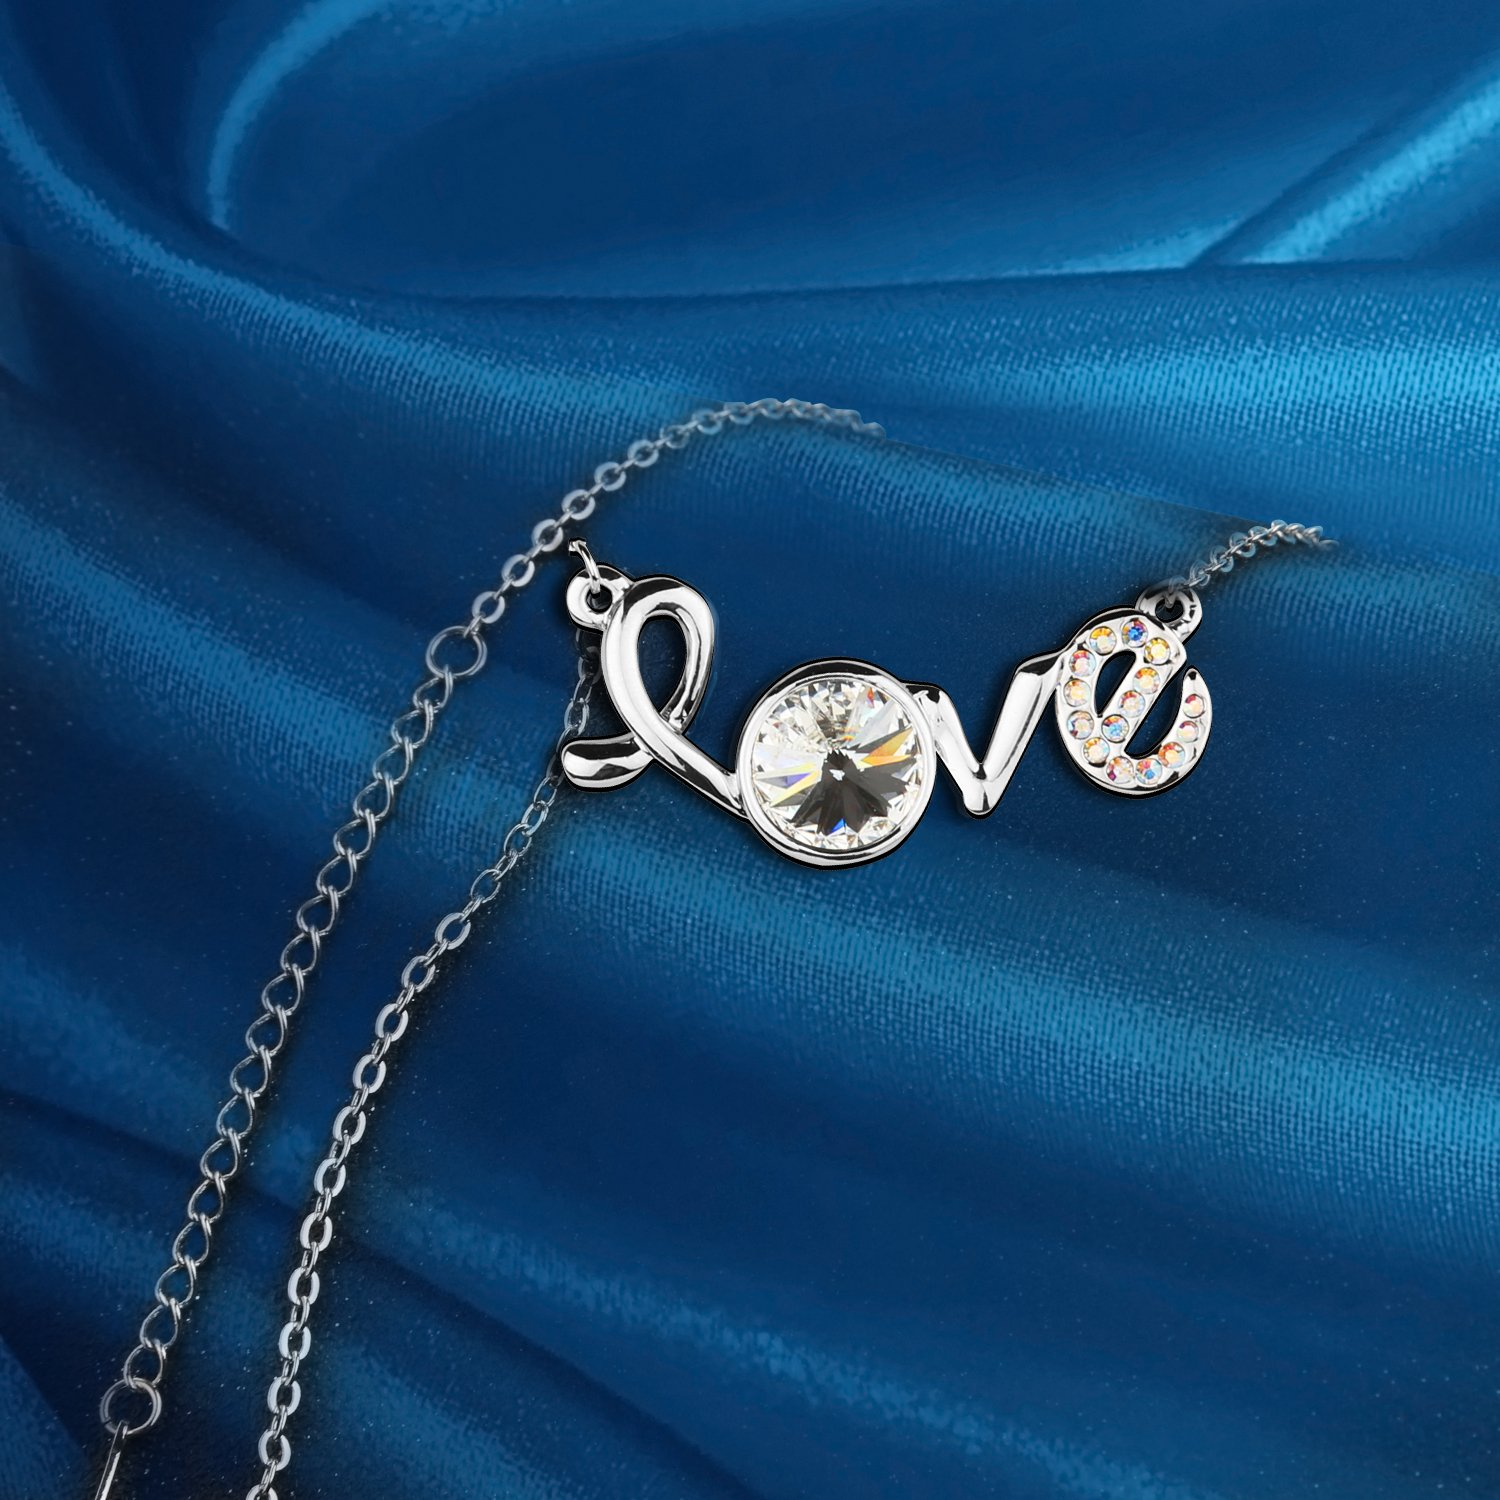 """Pealrich """"LOVE"""" Lettering Fashion Jewelry Pendant Necklace Made with Swarovski Crystal,Women/Girlfriend Love Gifts (White)"""